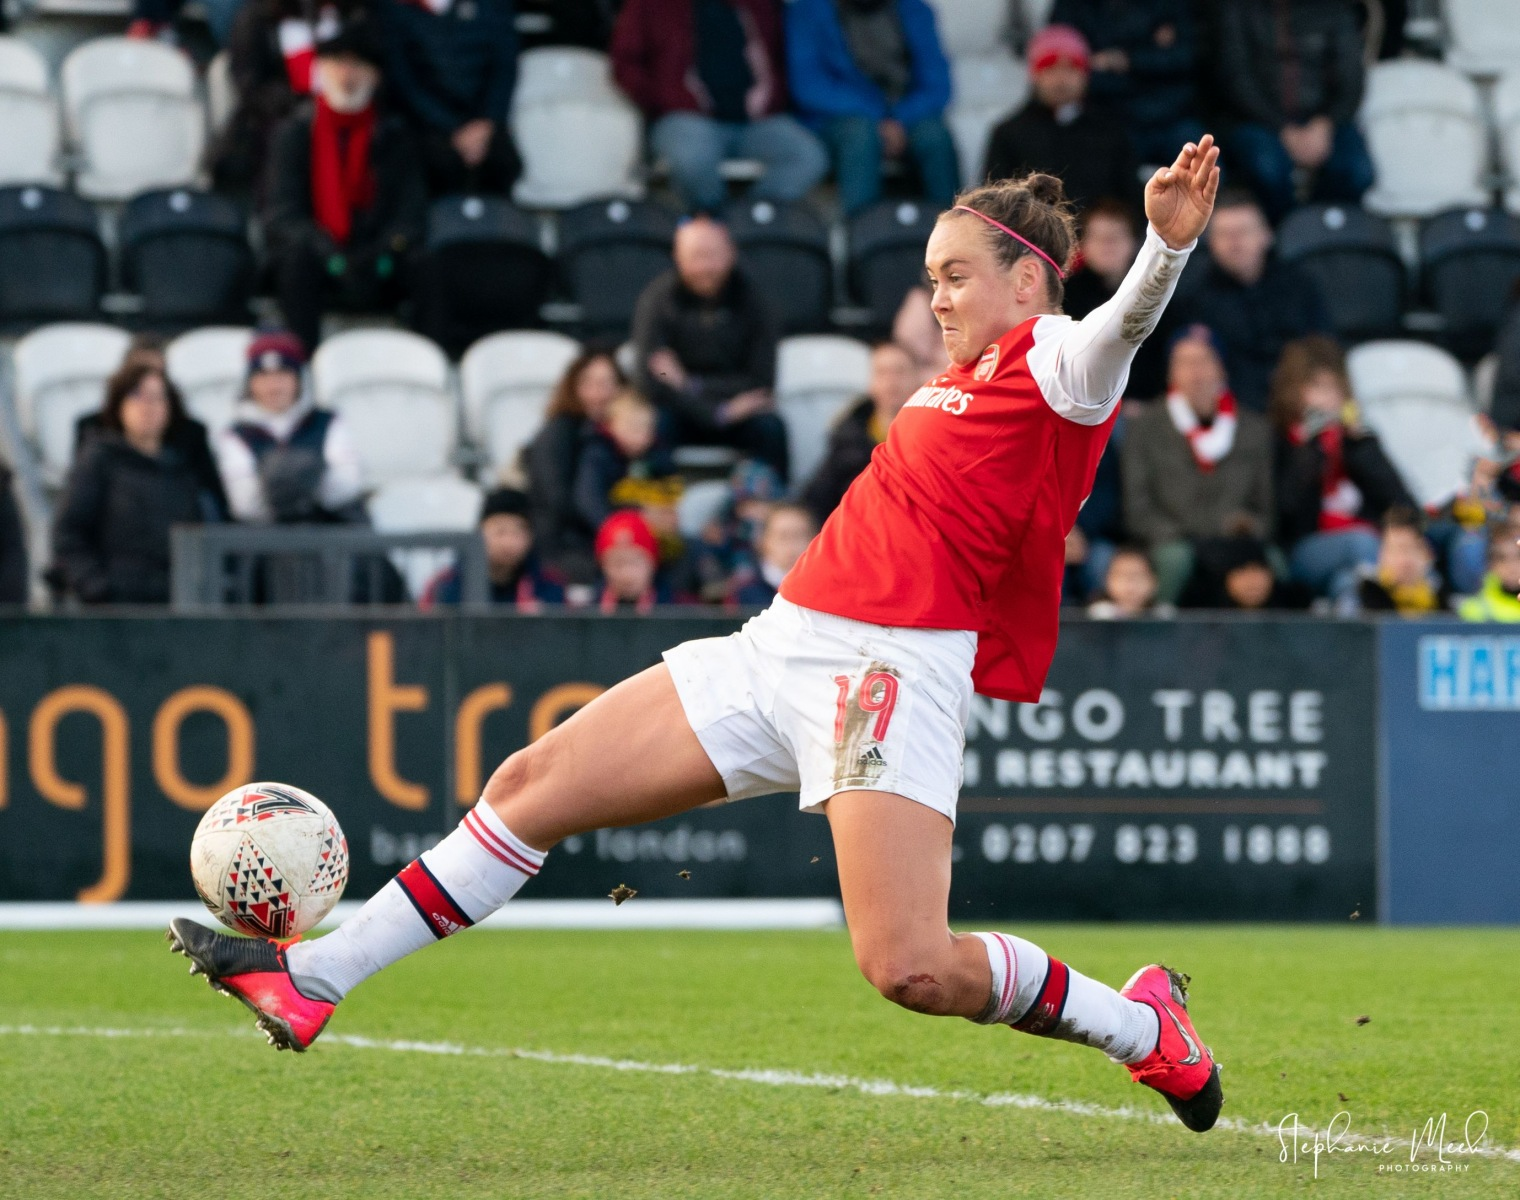 SM01335_Arsenal_v_Lewes_Women-Edit